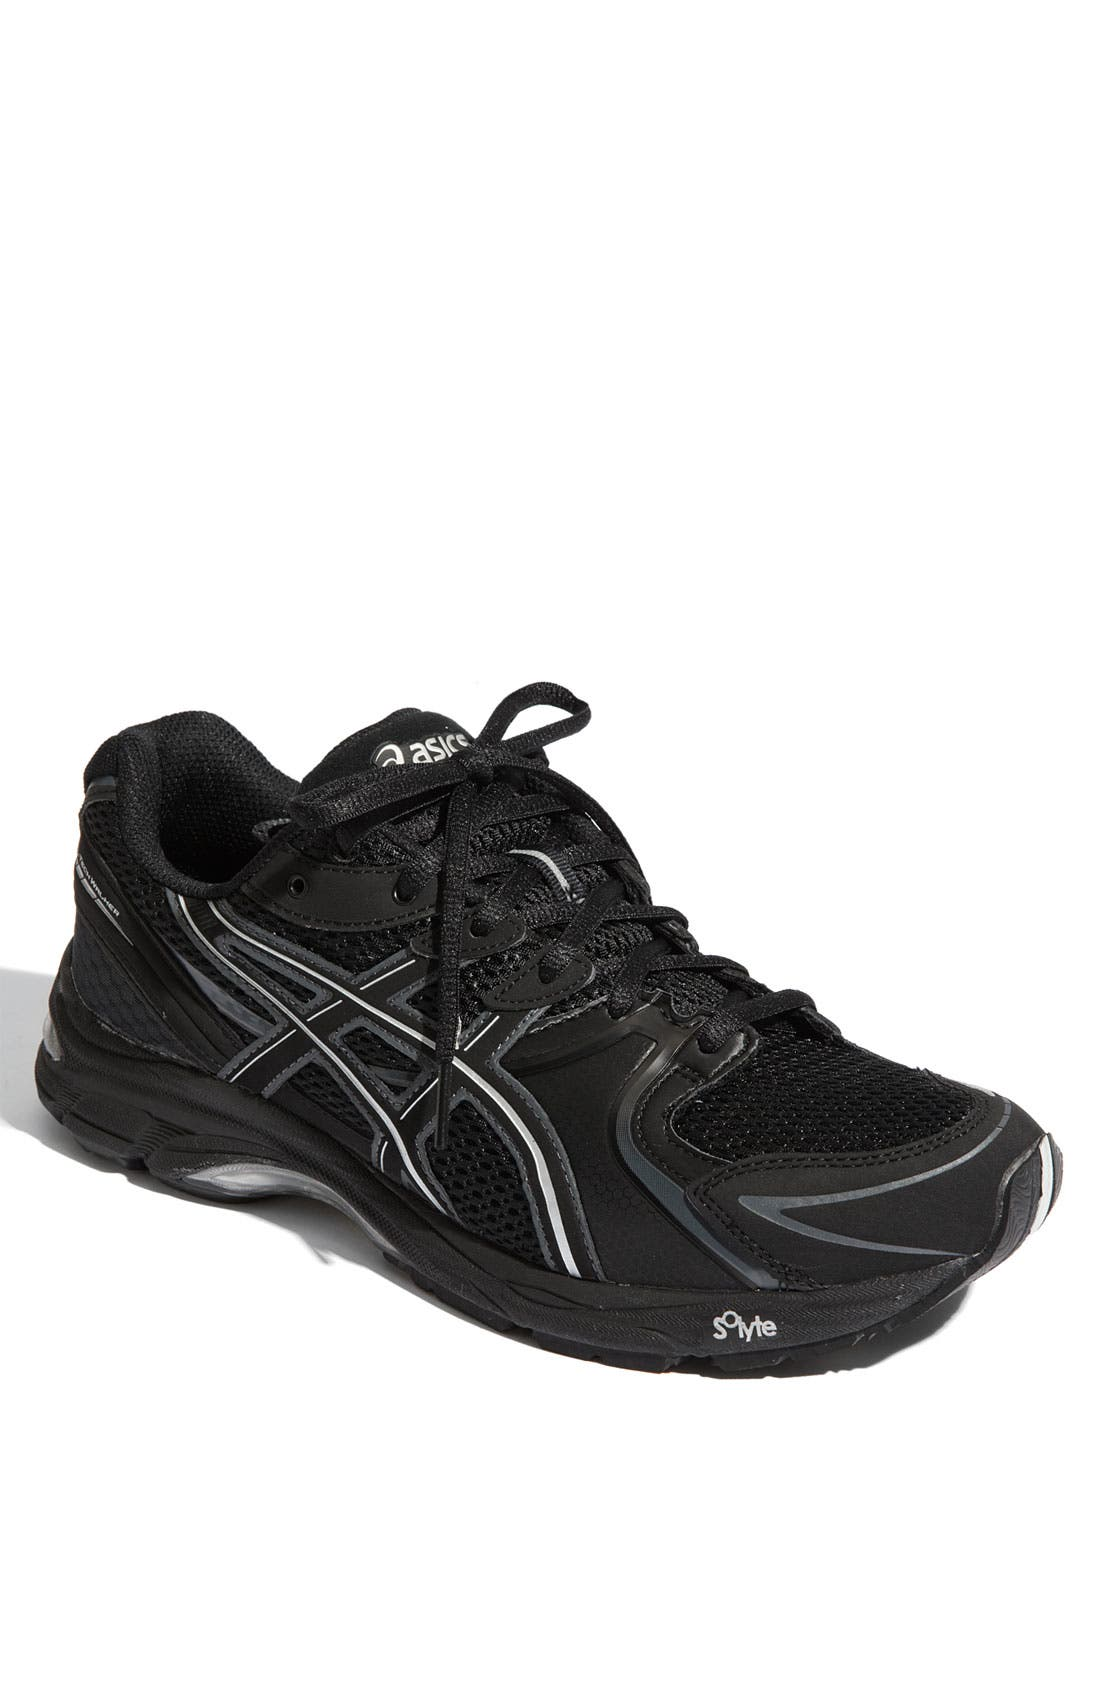 Alternate Image 1 Selected - ASICS® 'Gel-Tech Walker Neo' Walking Shoe (Men) (Online Only)